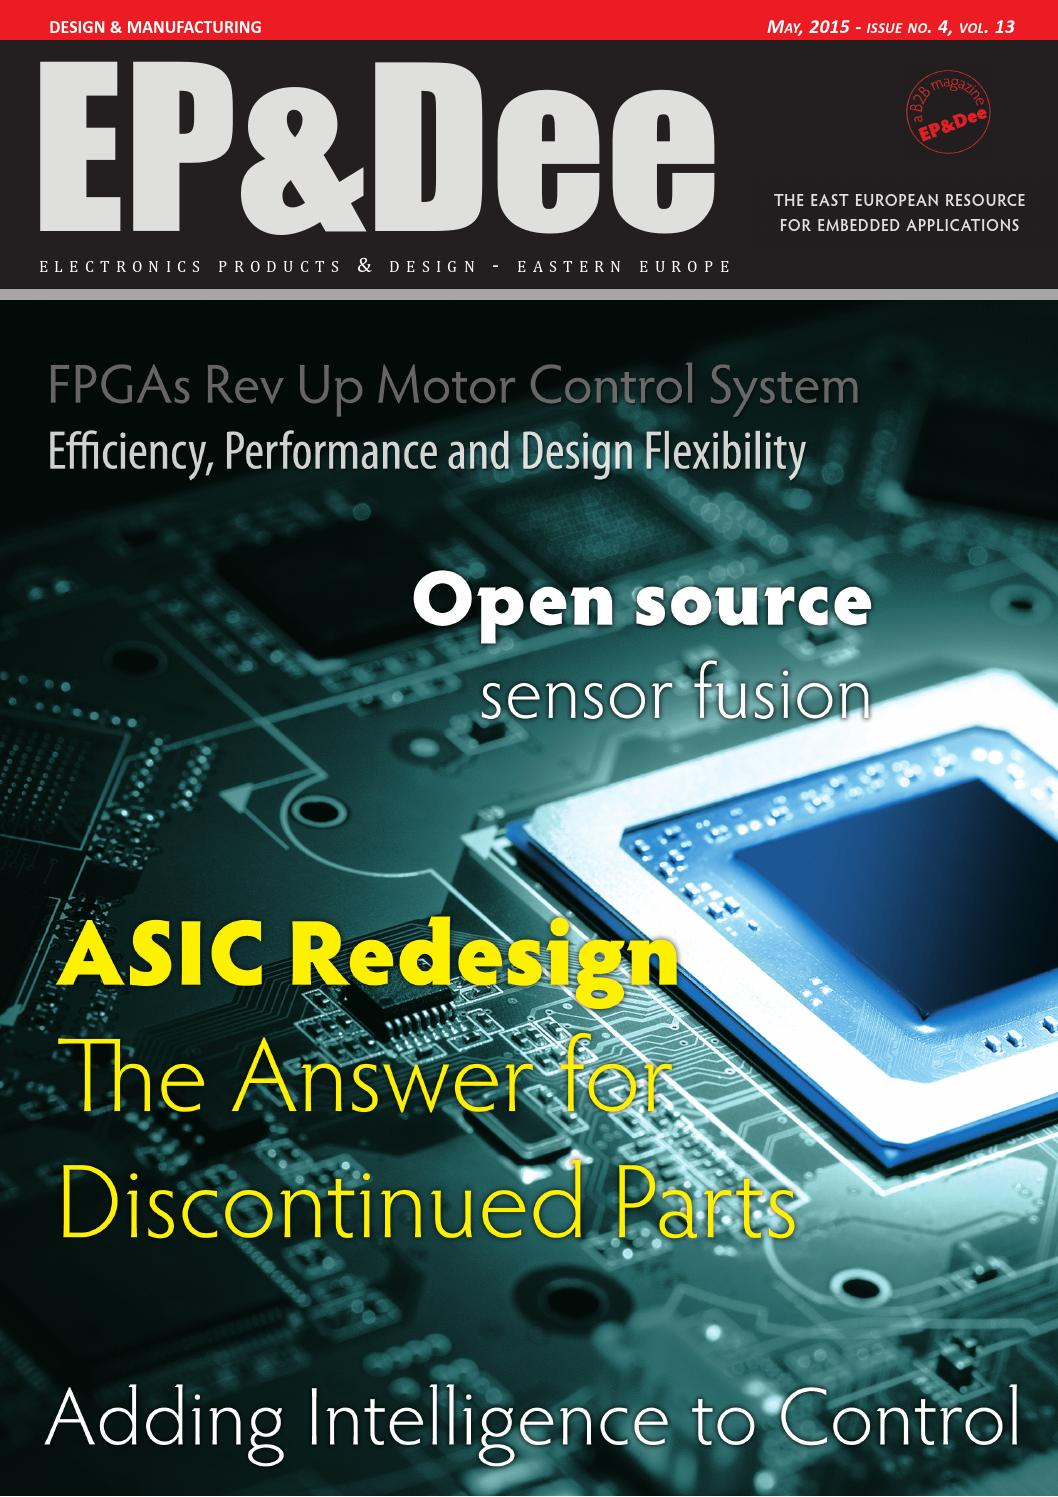 Epdee No 4 By Esp Issuu Simple Electronic Lock Uses Singletransistor Circuit Analog Content